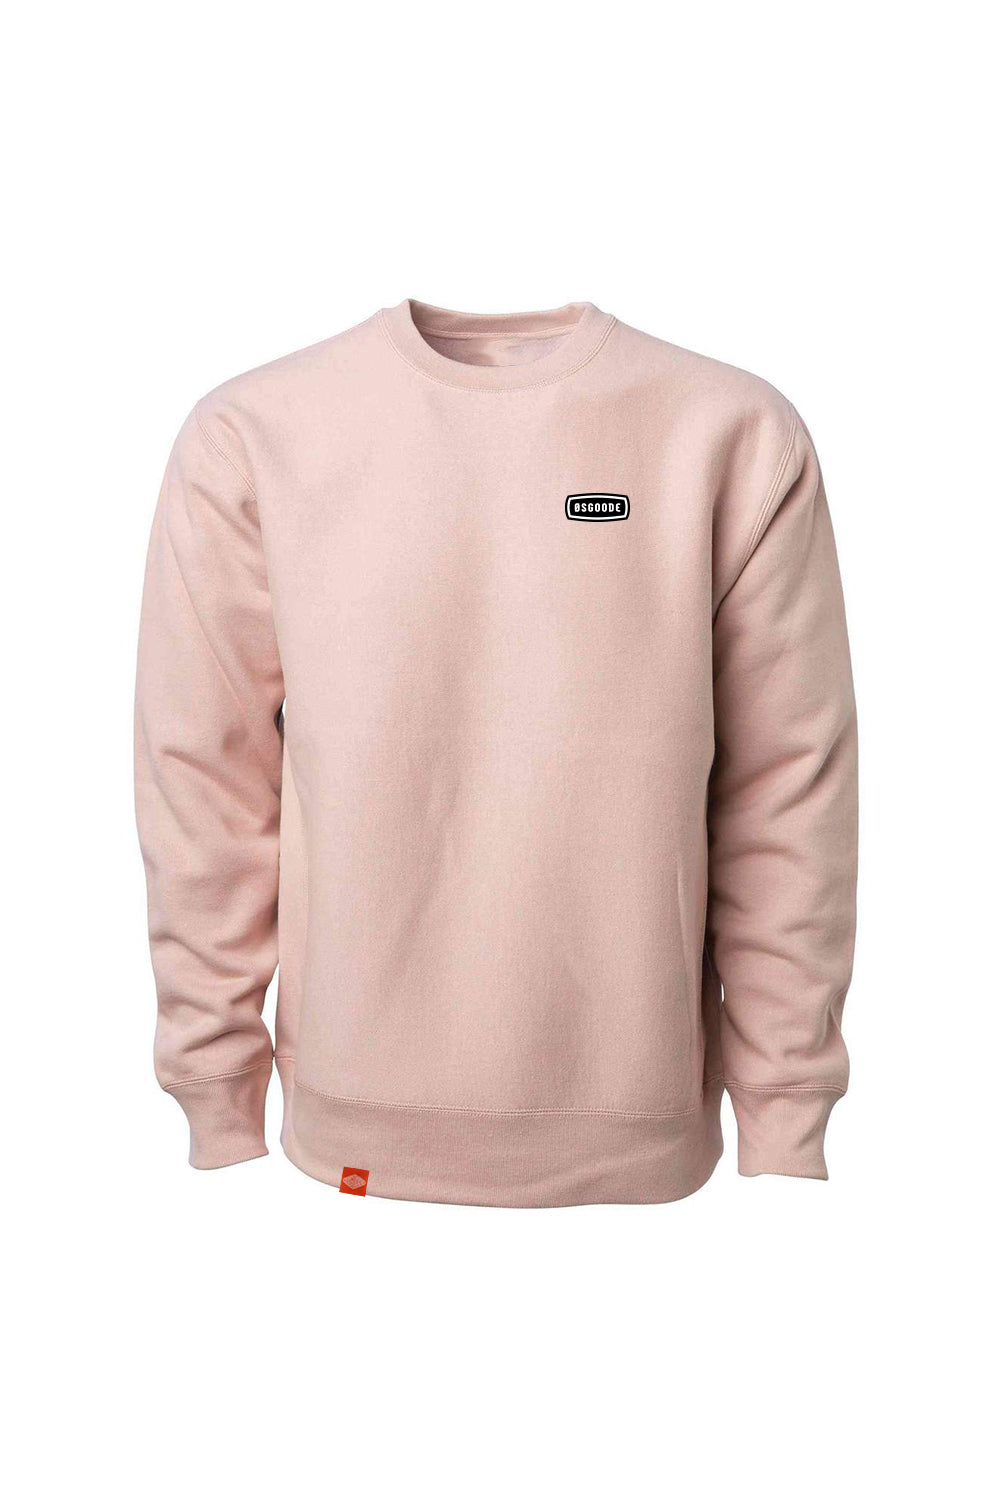 MEMENTO PREMIUM CREWNECK DUSTY ROSE